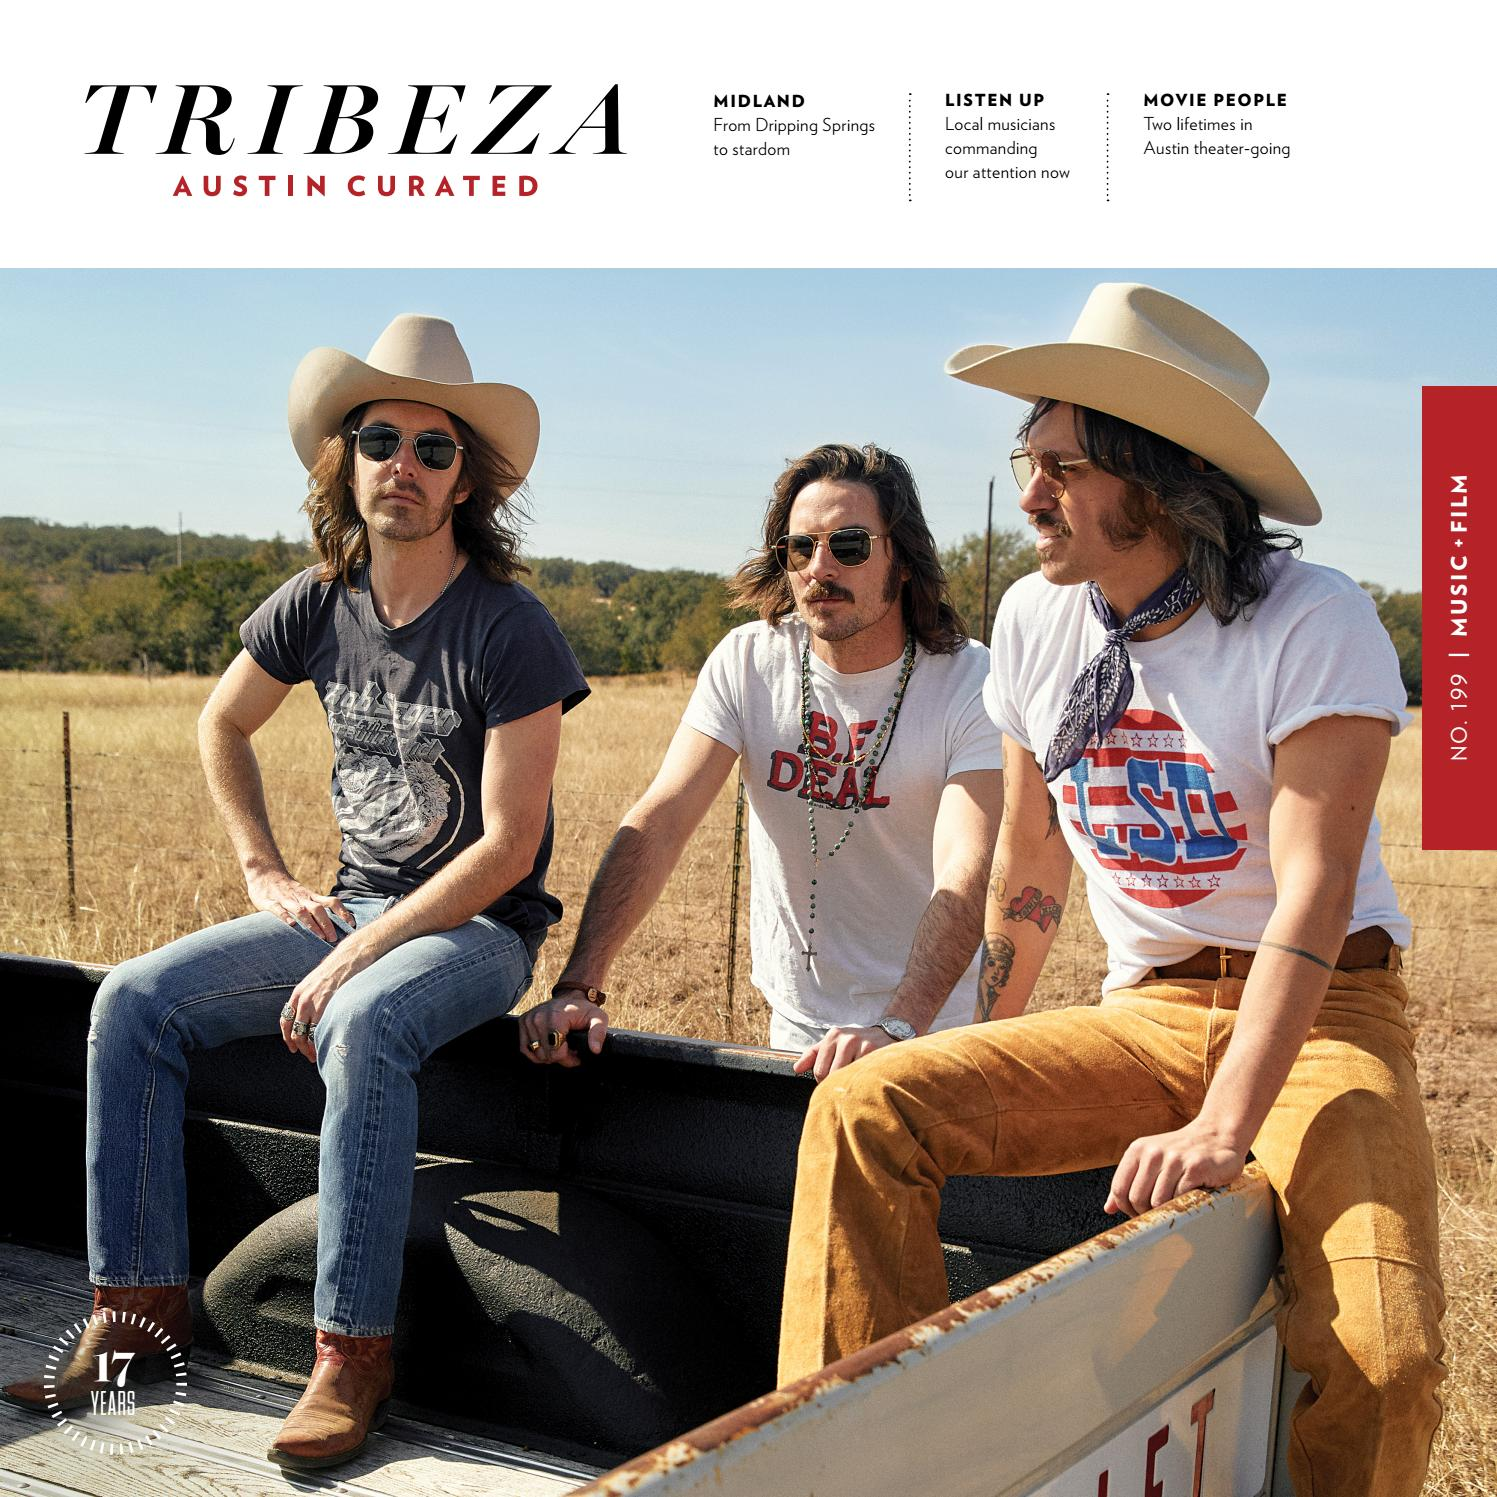 Tribeza March 2018 By Tribeza Austin Curated Issuu